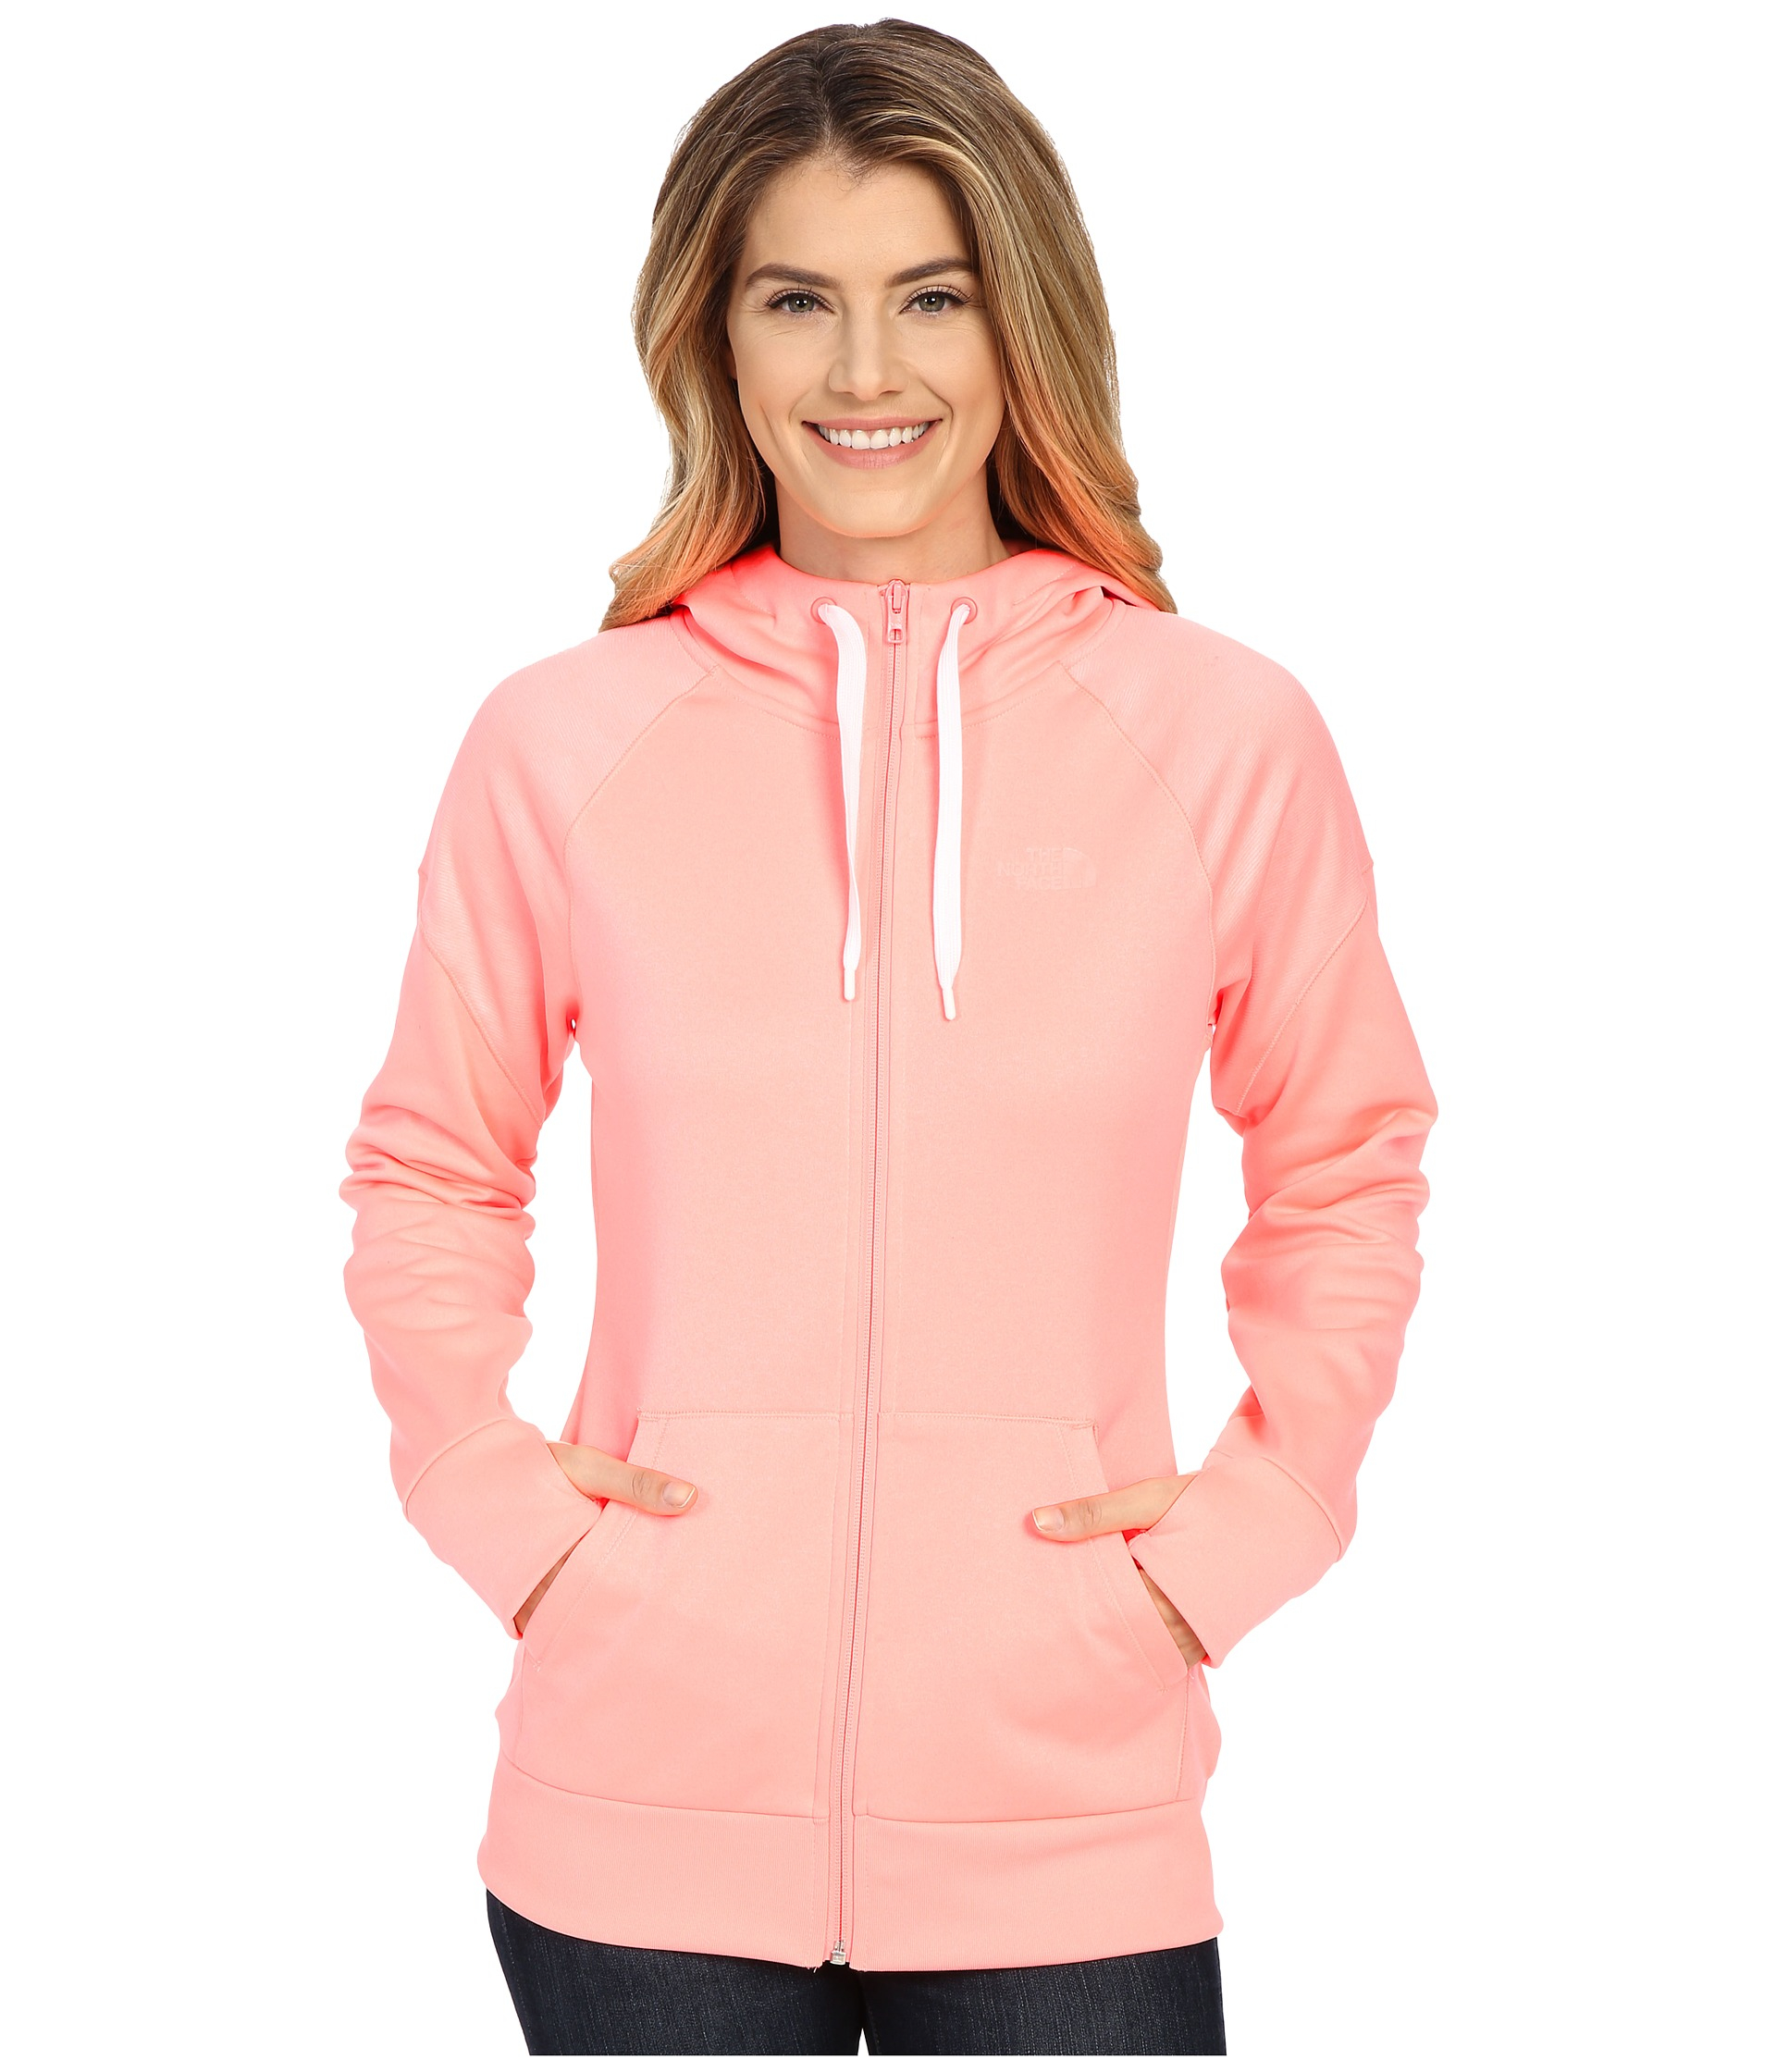 71f213461 denmark the north face zip front hoodie 0bbbb e84fd